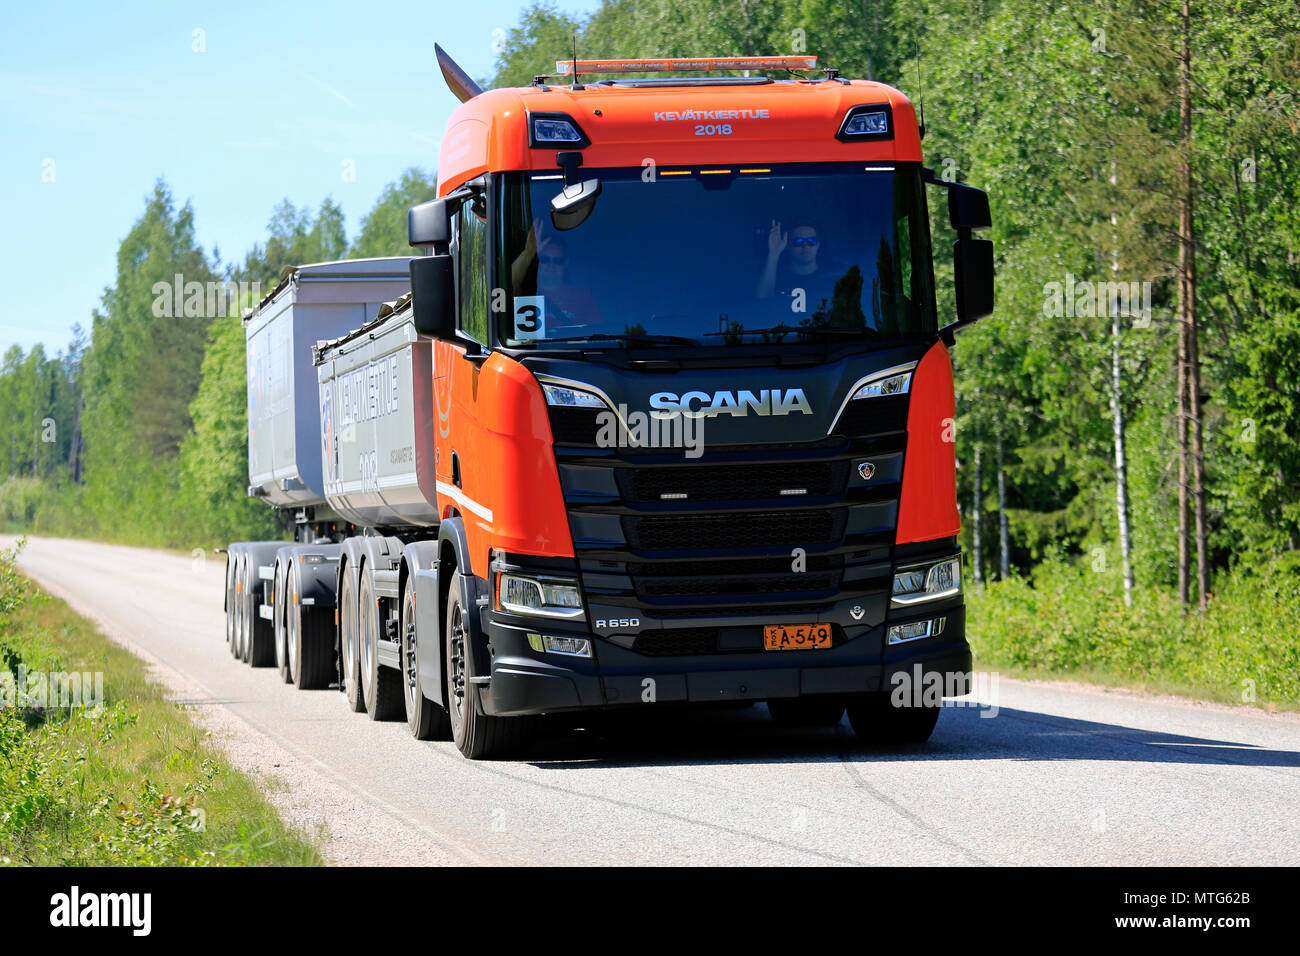 new scania stockfotos new scania bilder seite 2 alamy. Black Bedroom Furniture Sets. Home Design Ideas